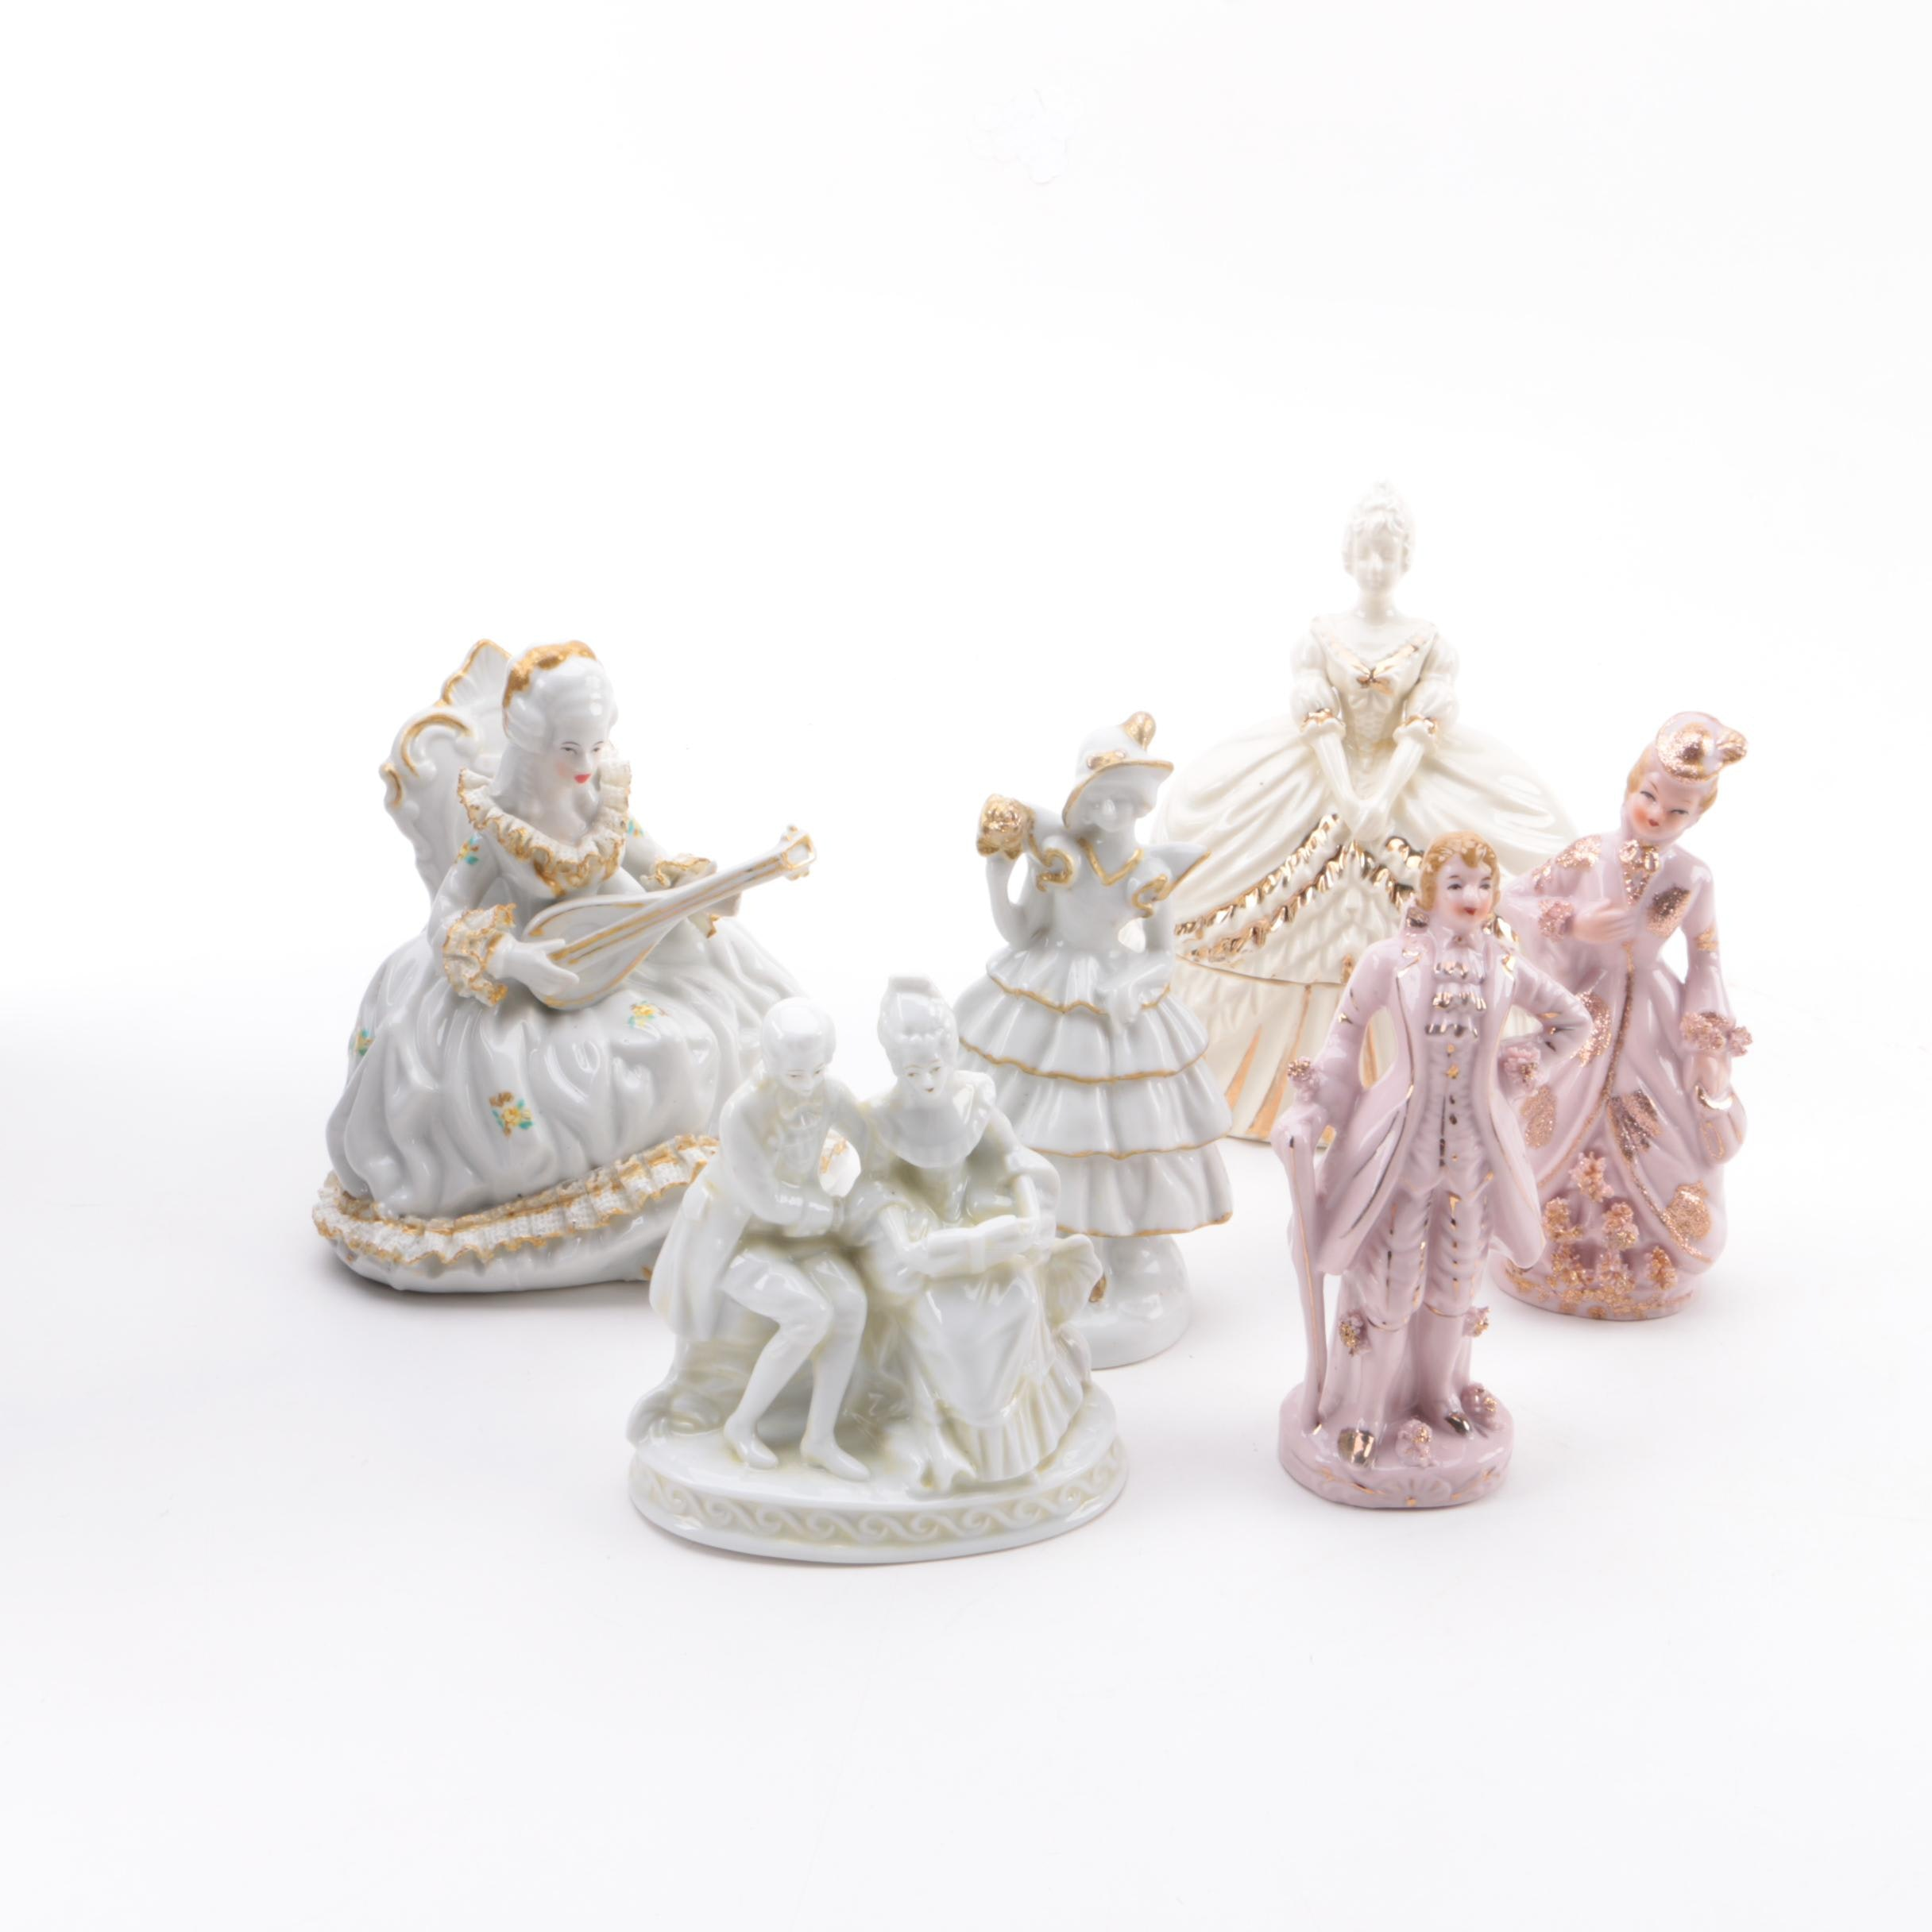 Victorian Style Ceramic Figurines and Trinket Box